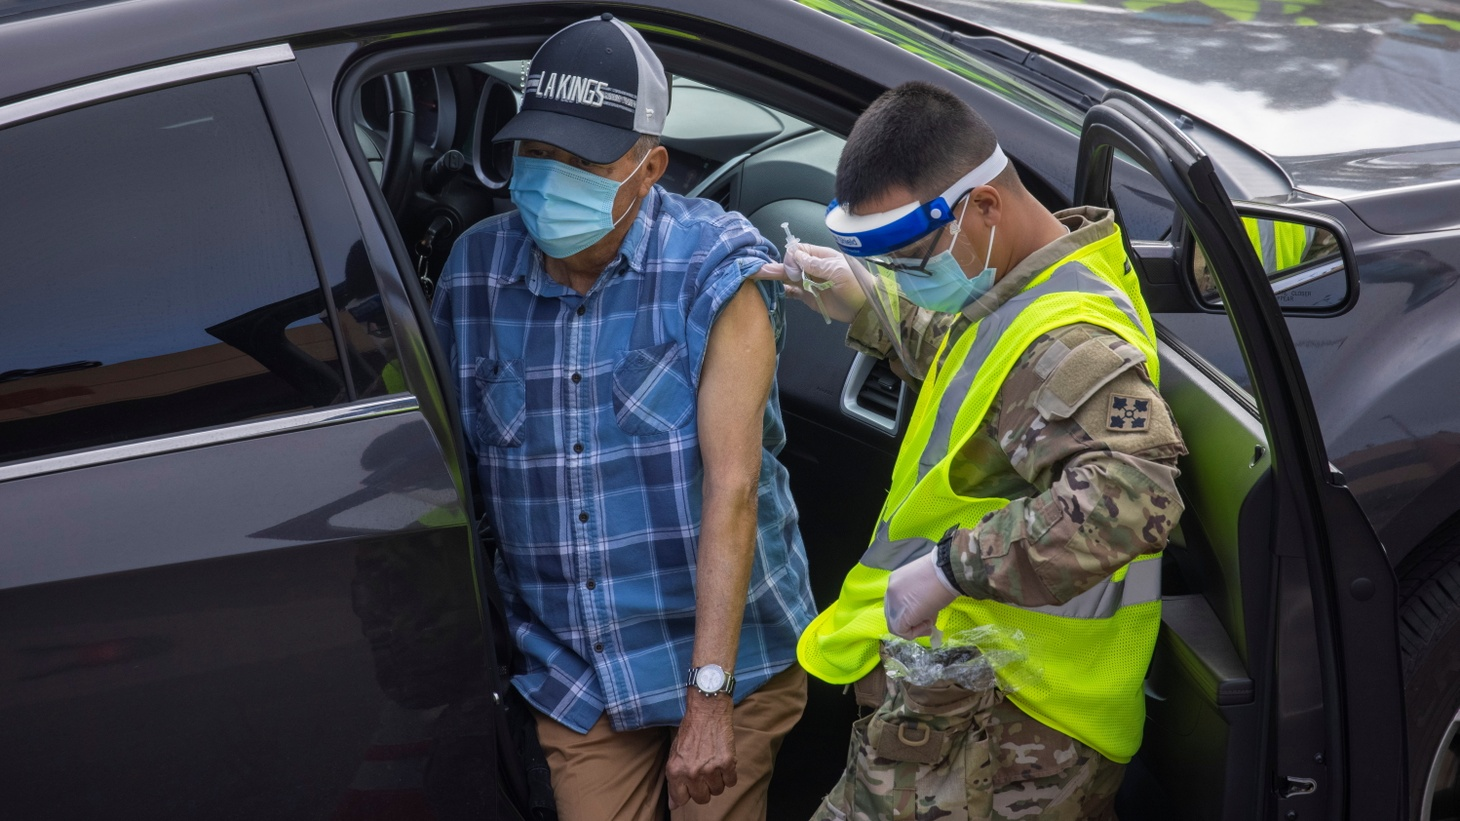 A person is vaccinated by the U.S. military at the opening of the country's first federal and state operated community vaccination site during the outbreak of the coronavirus disease (COVID-19) in Los Angeles, California, U.S., February 16, 2021.